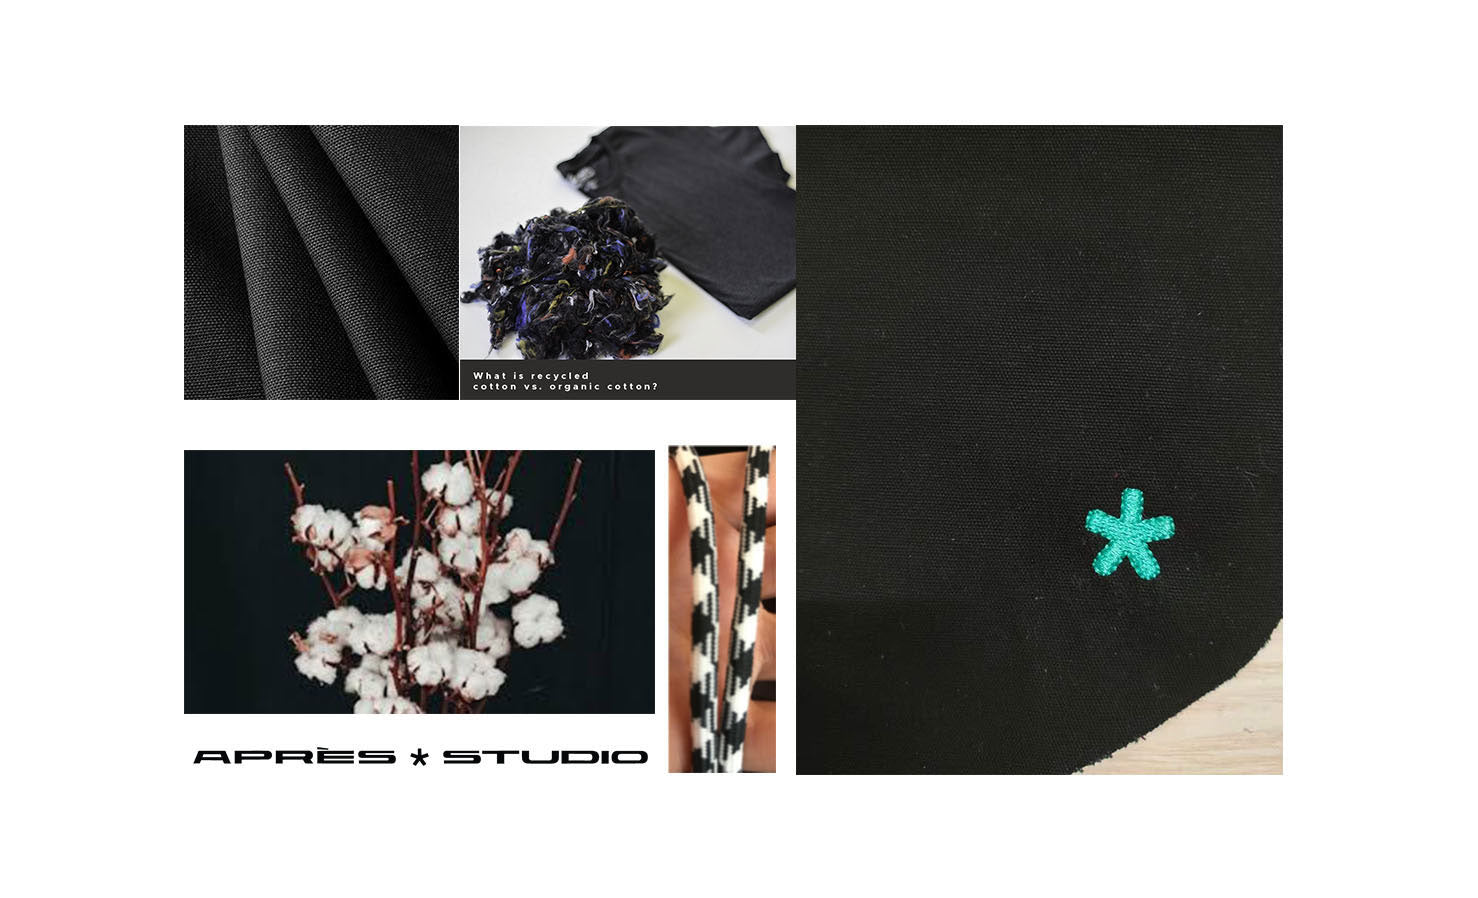 fabric pieces and swatches with cotton flowers